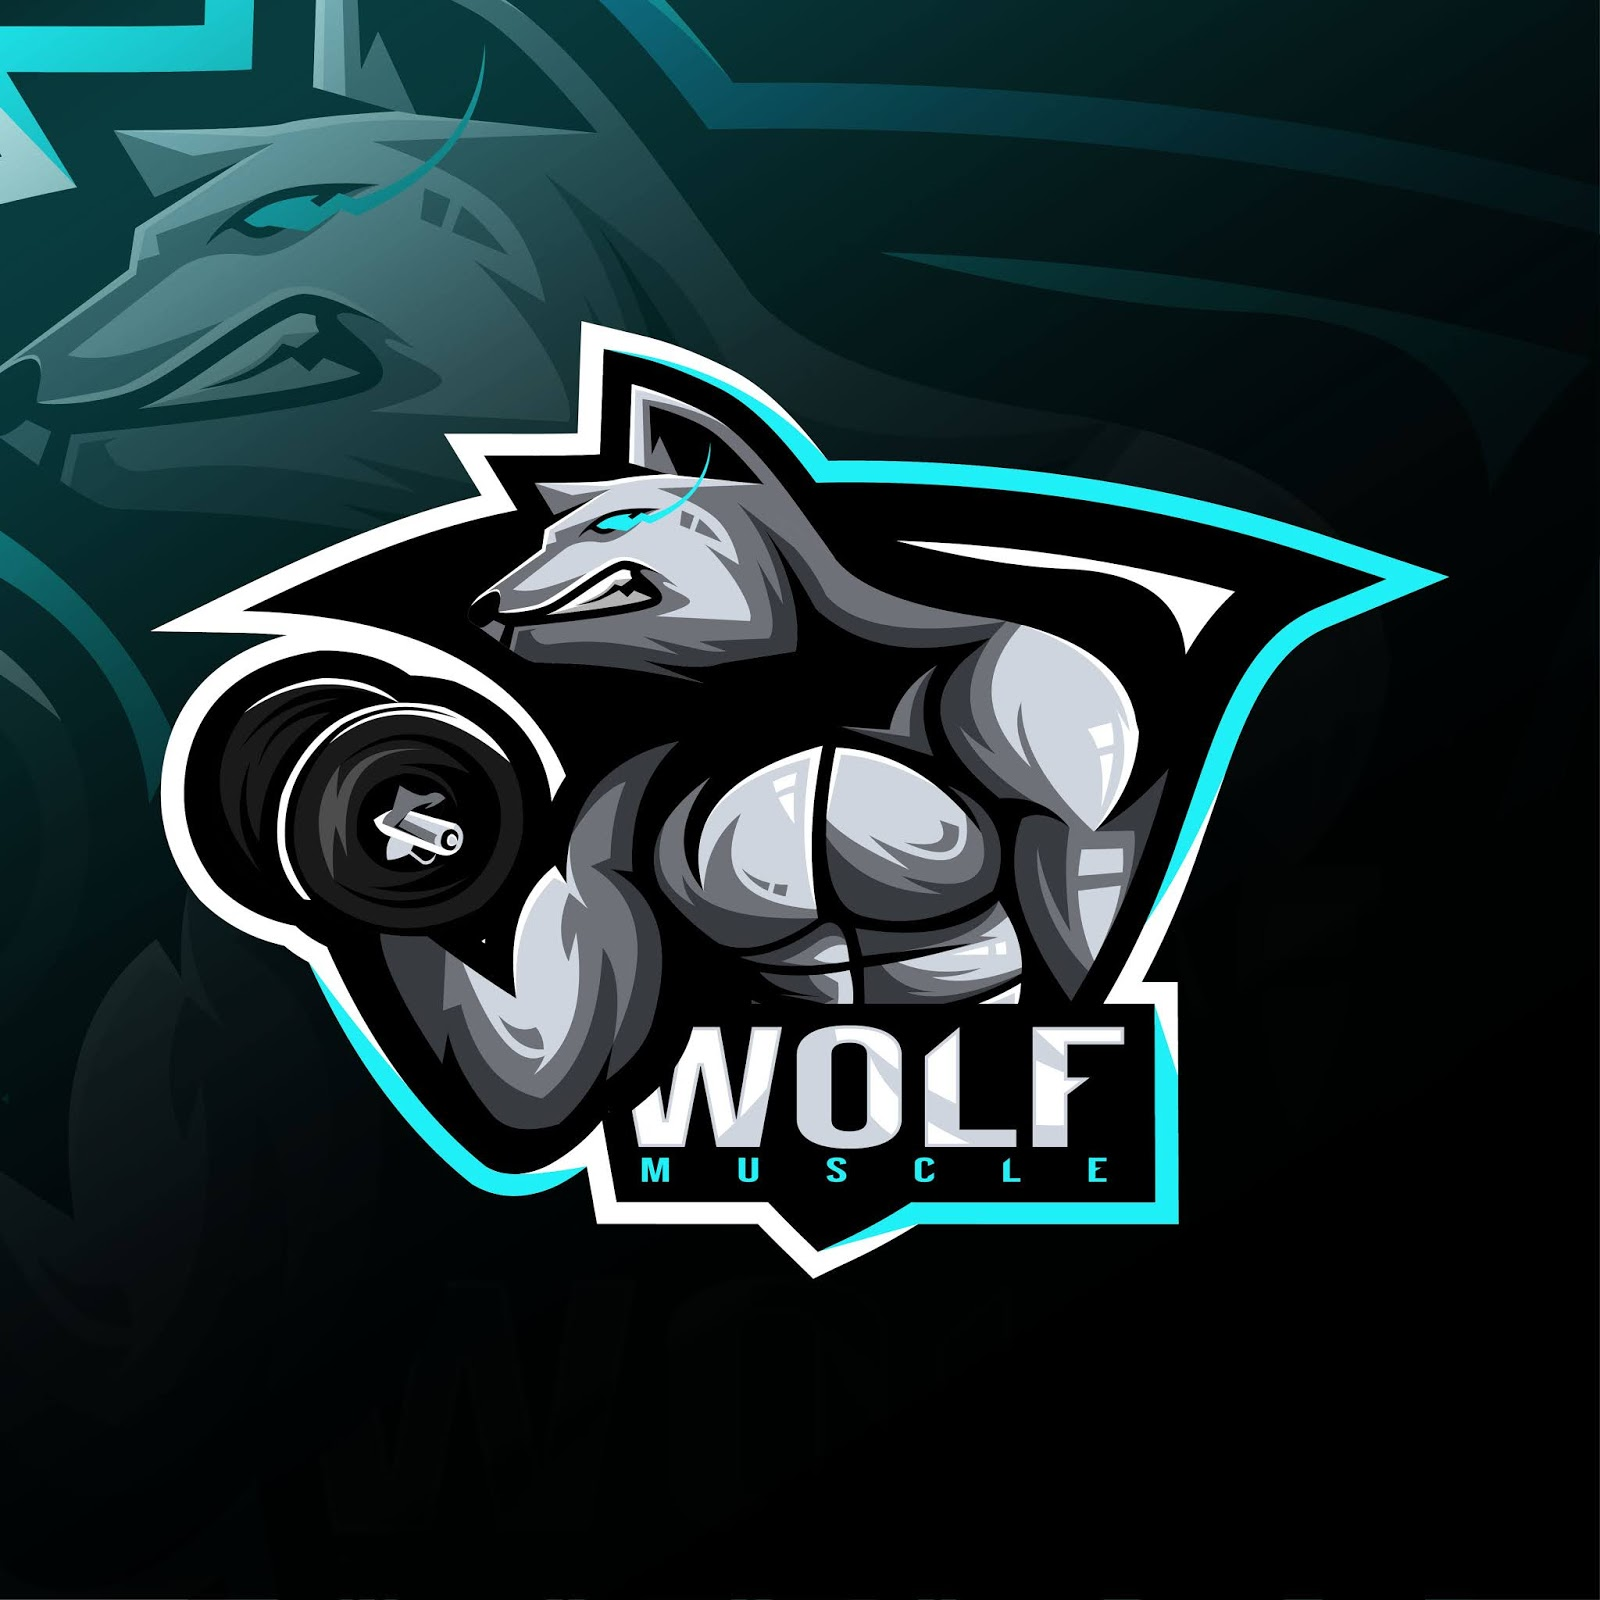 Wolf Fitness Mascot Logo Esport Design Free Download Vector CDR, AI, EPS and PNG Formats